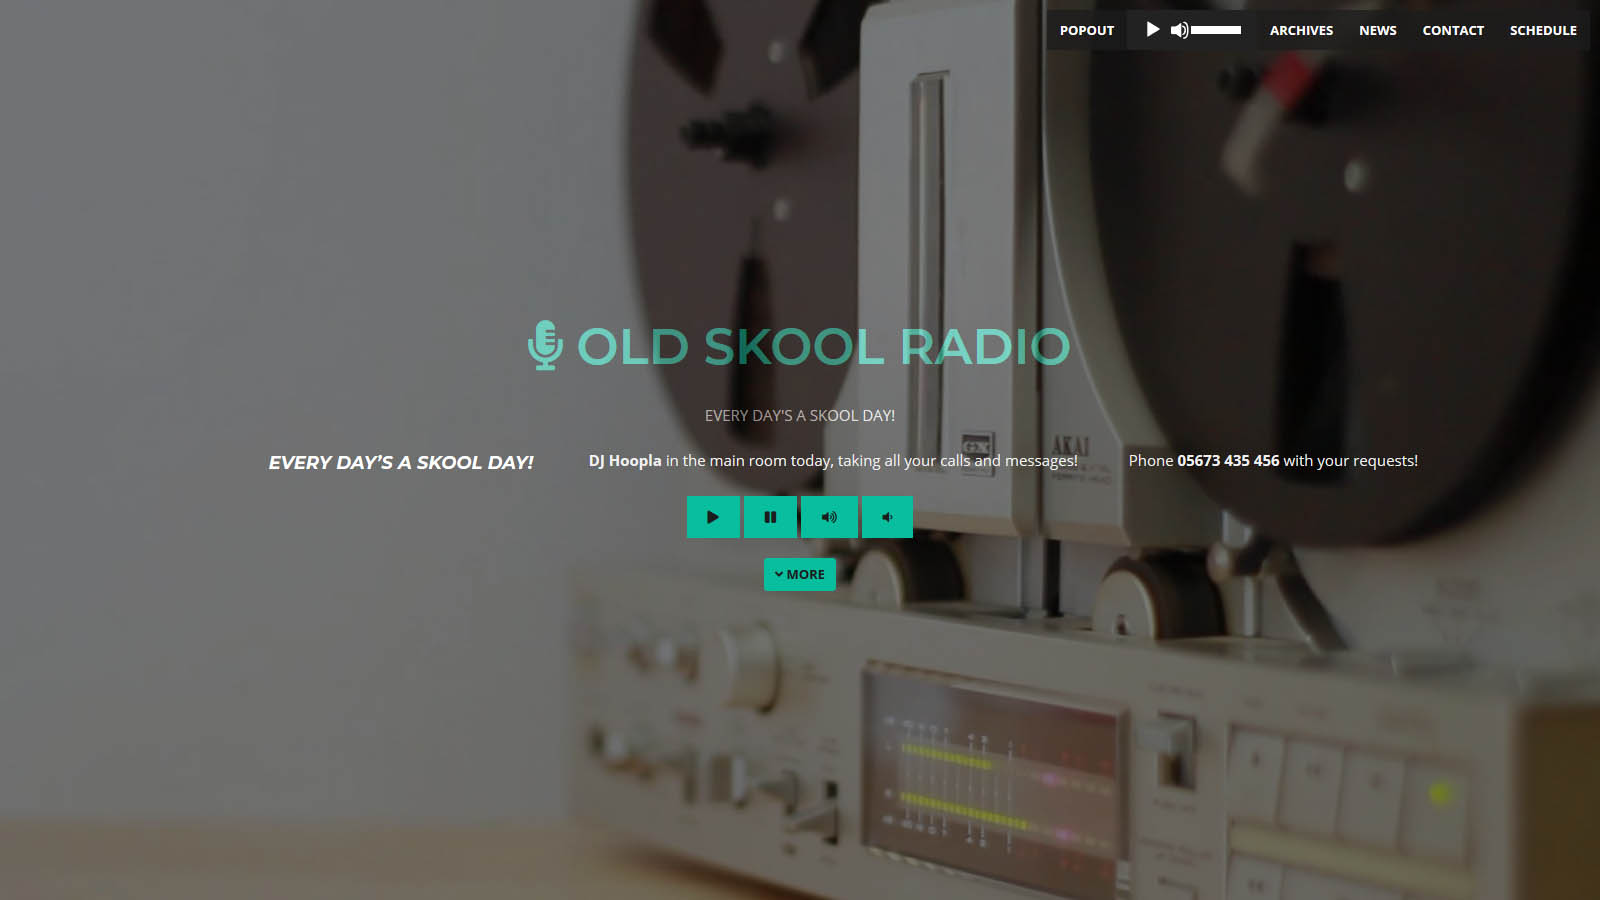 Website for a radio show with schedule and video animation